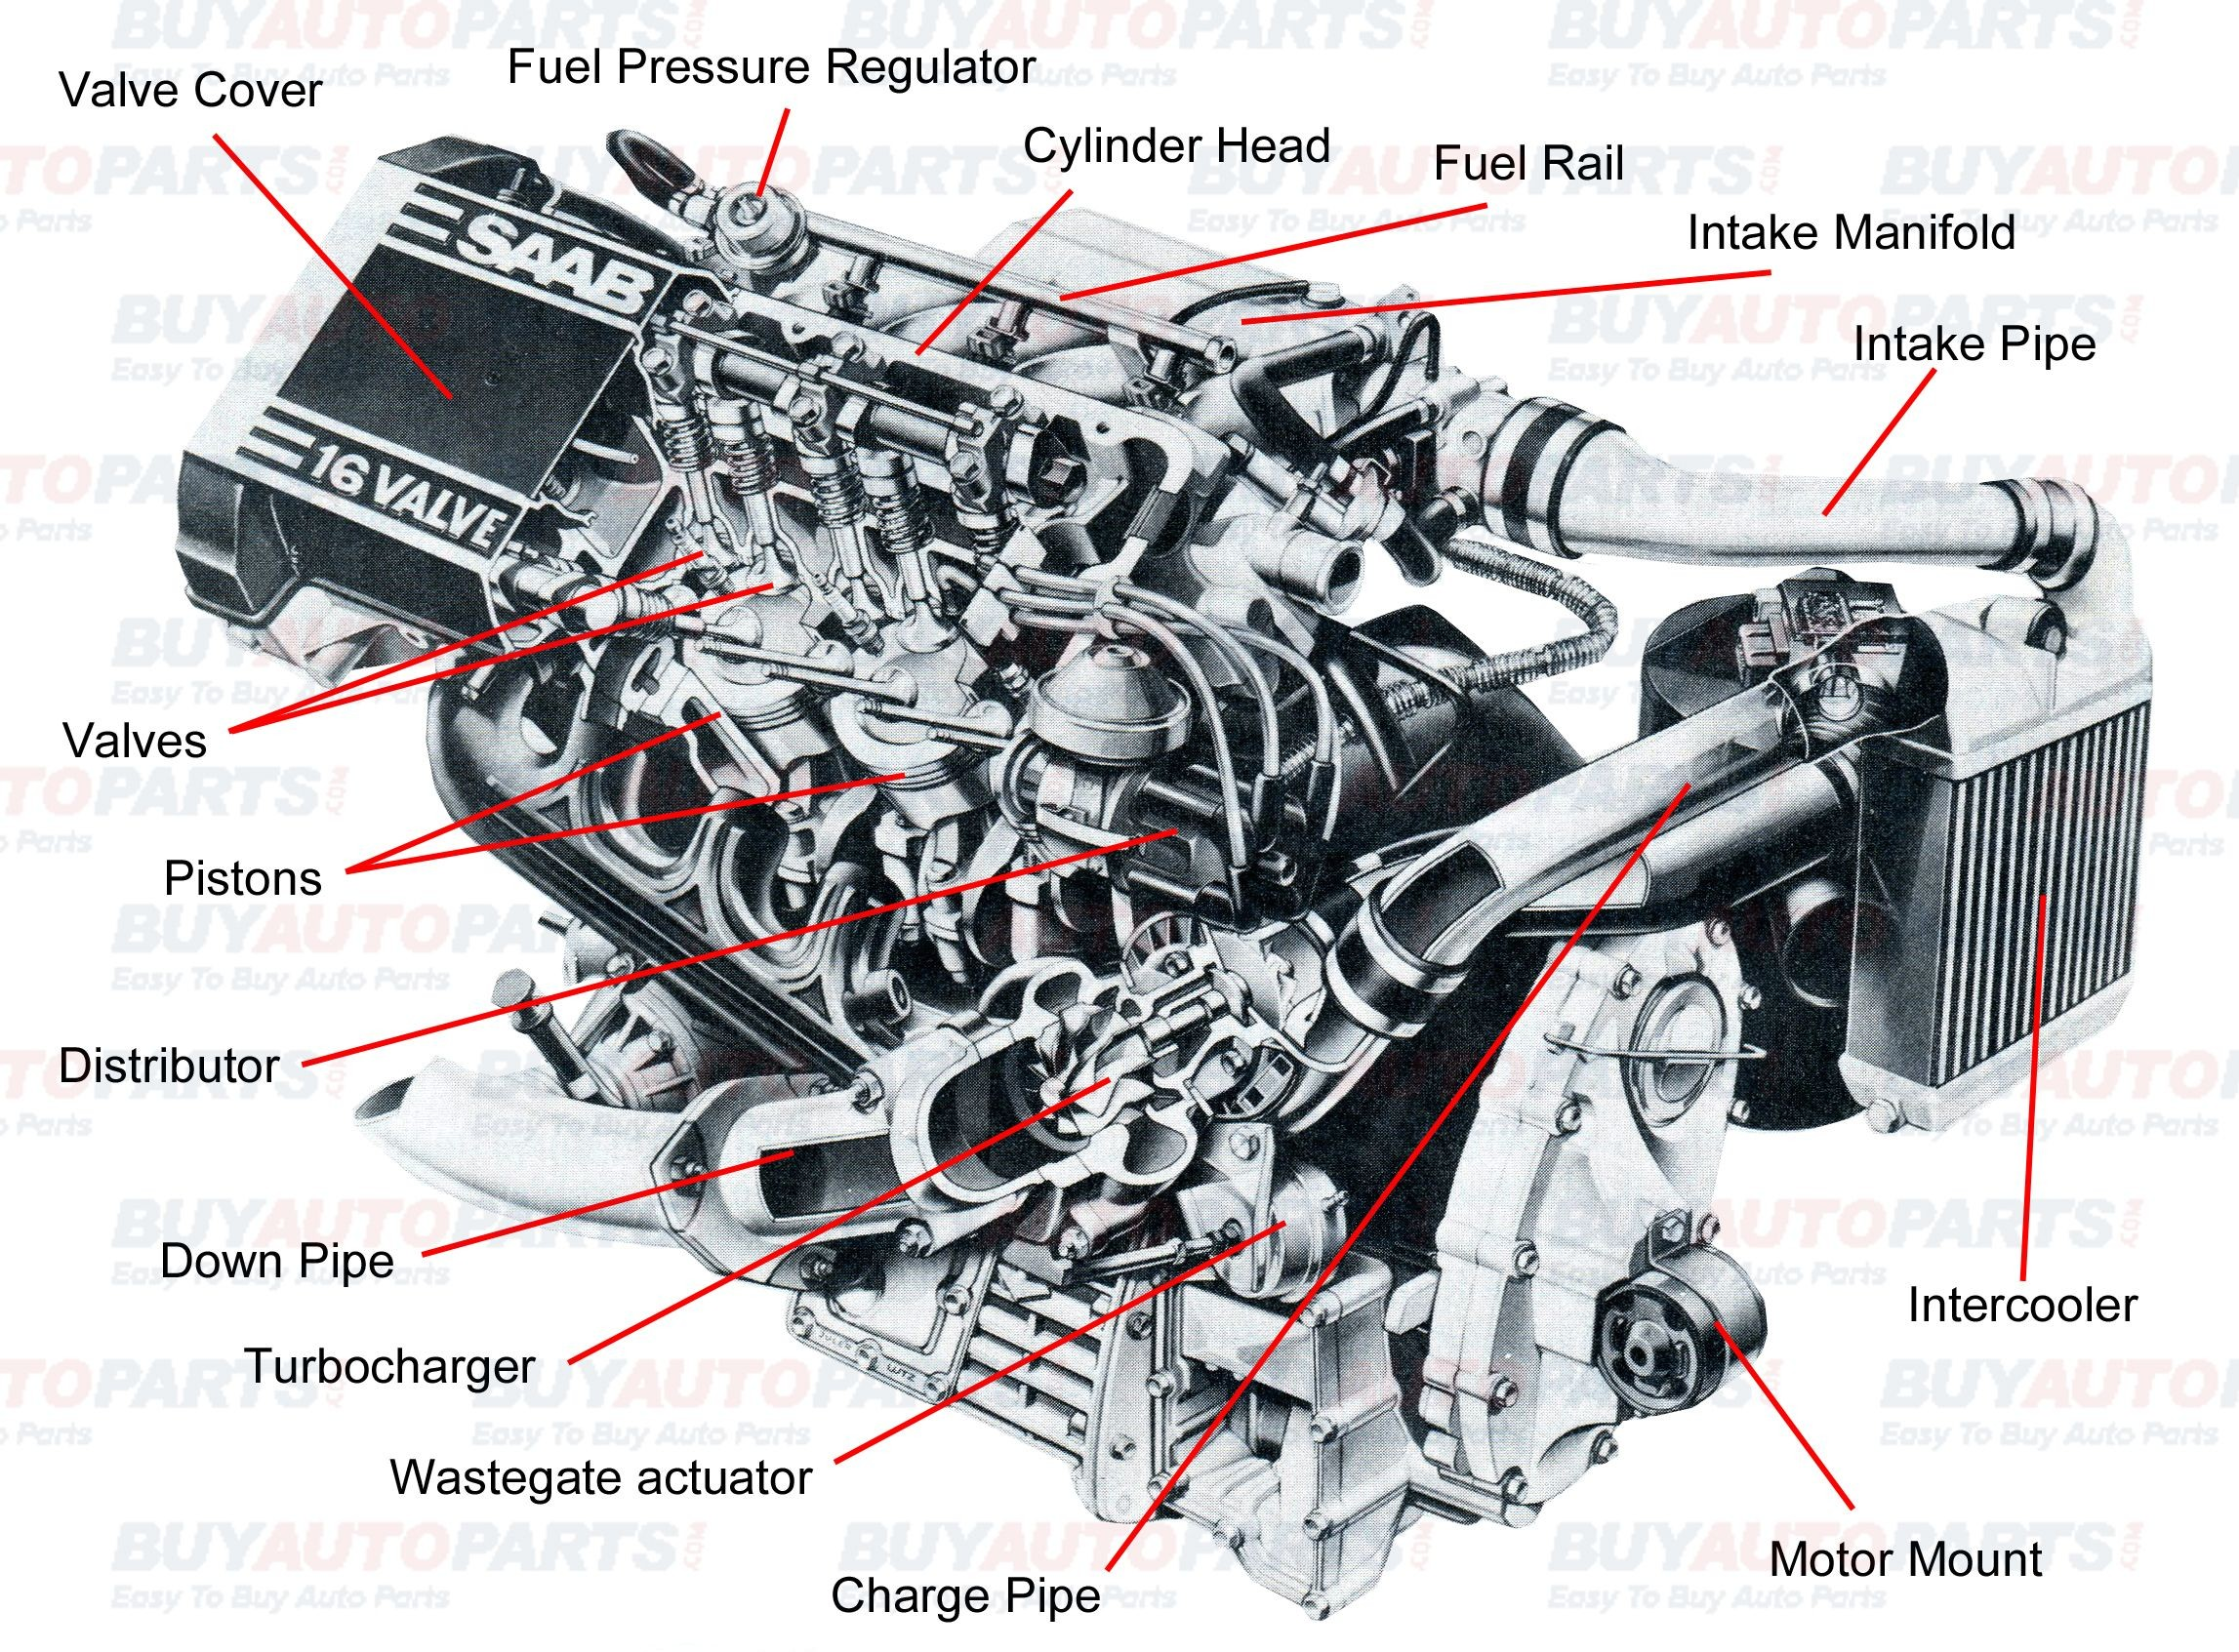 Car Exterior Diagram Pin by Jimmiejanet Testellamwfz On What Does An Engine with Turbo Of Car Exterior Diagram Infiniti Qx70 Suv Owner Reviews Mpg Problems Reliability